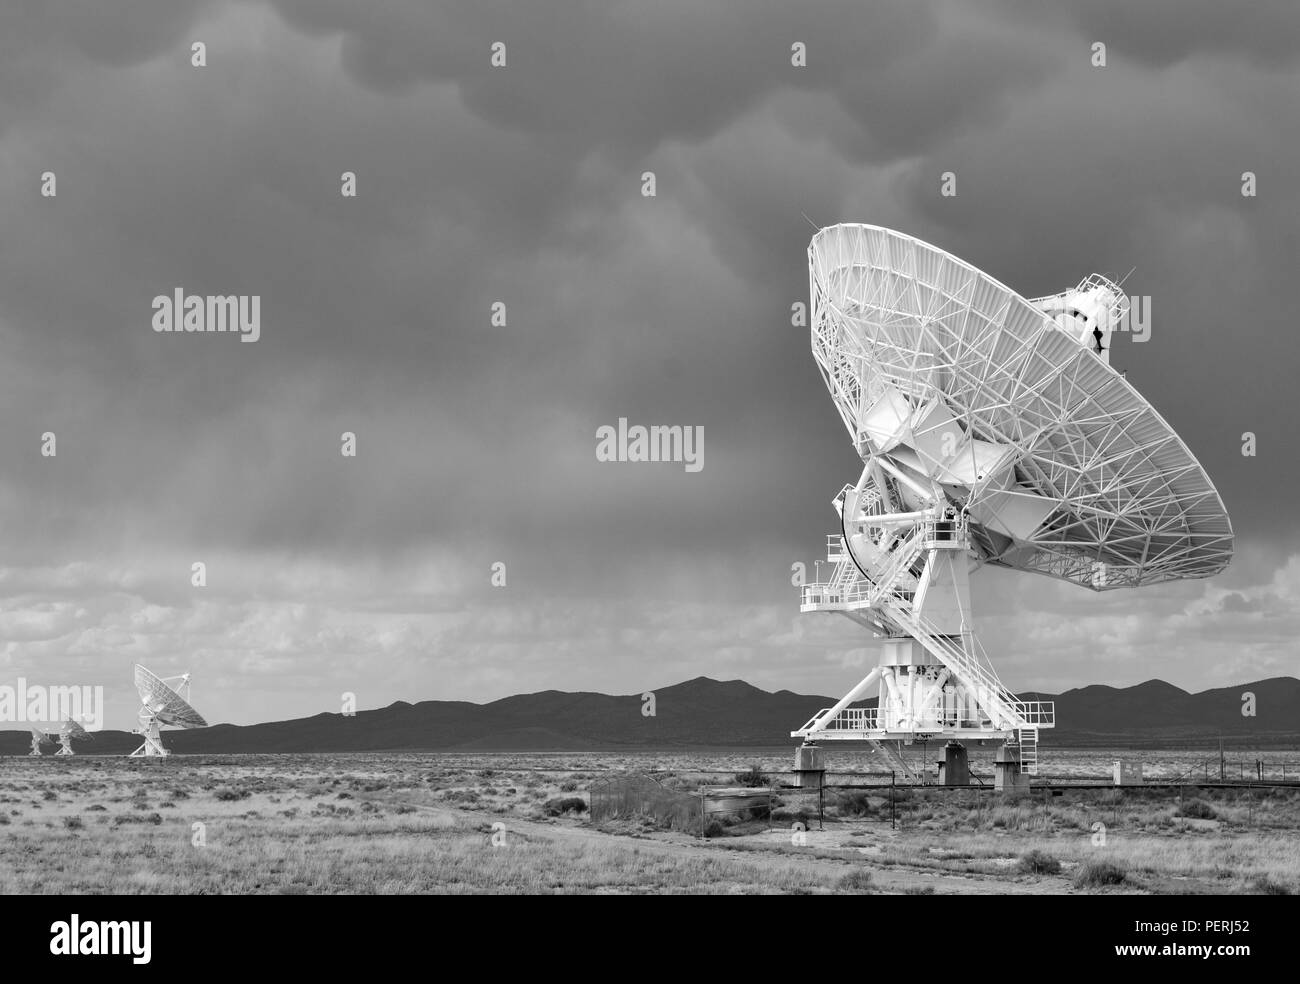 Very Large Array satellite dishes, New Mexico, USA Stock Photo